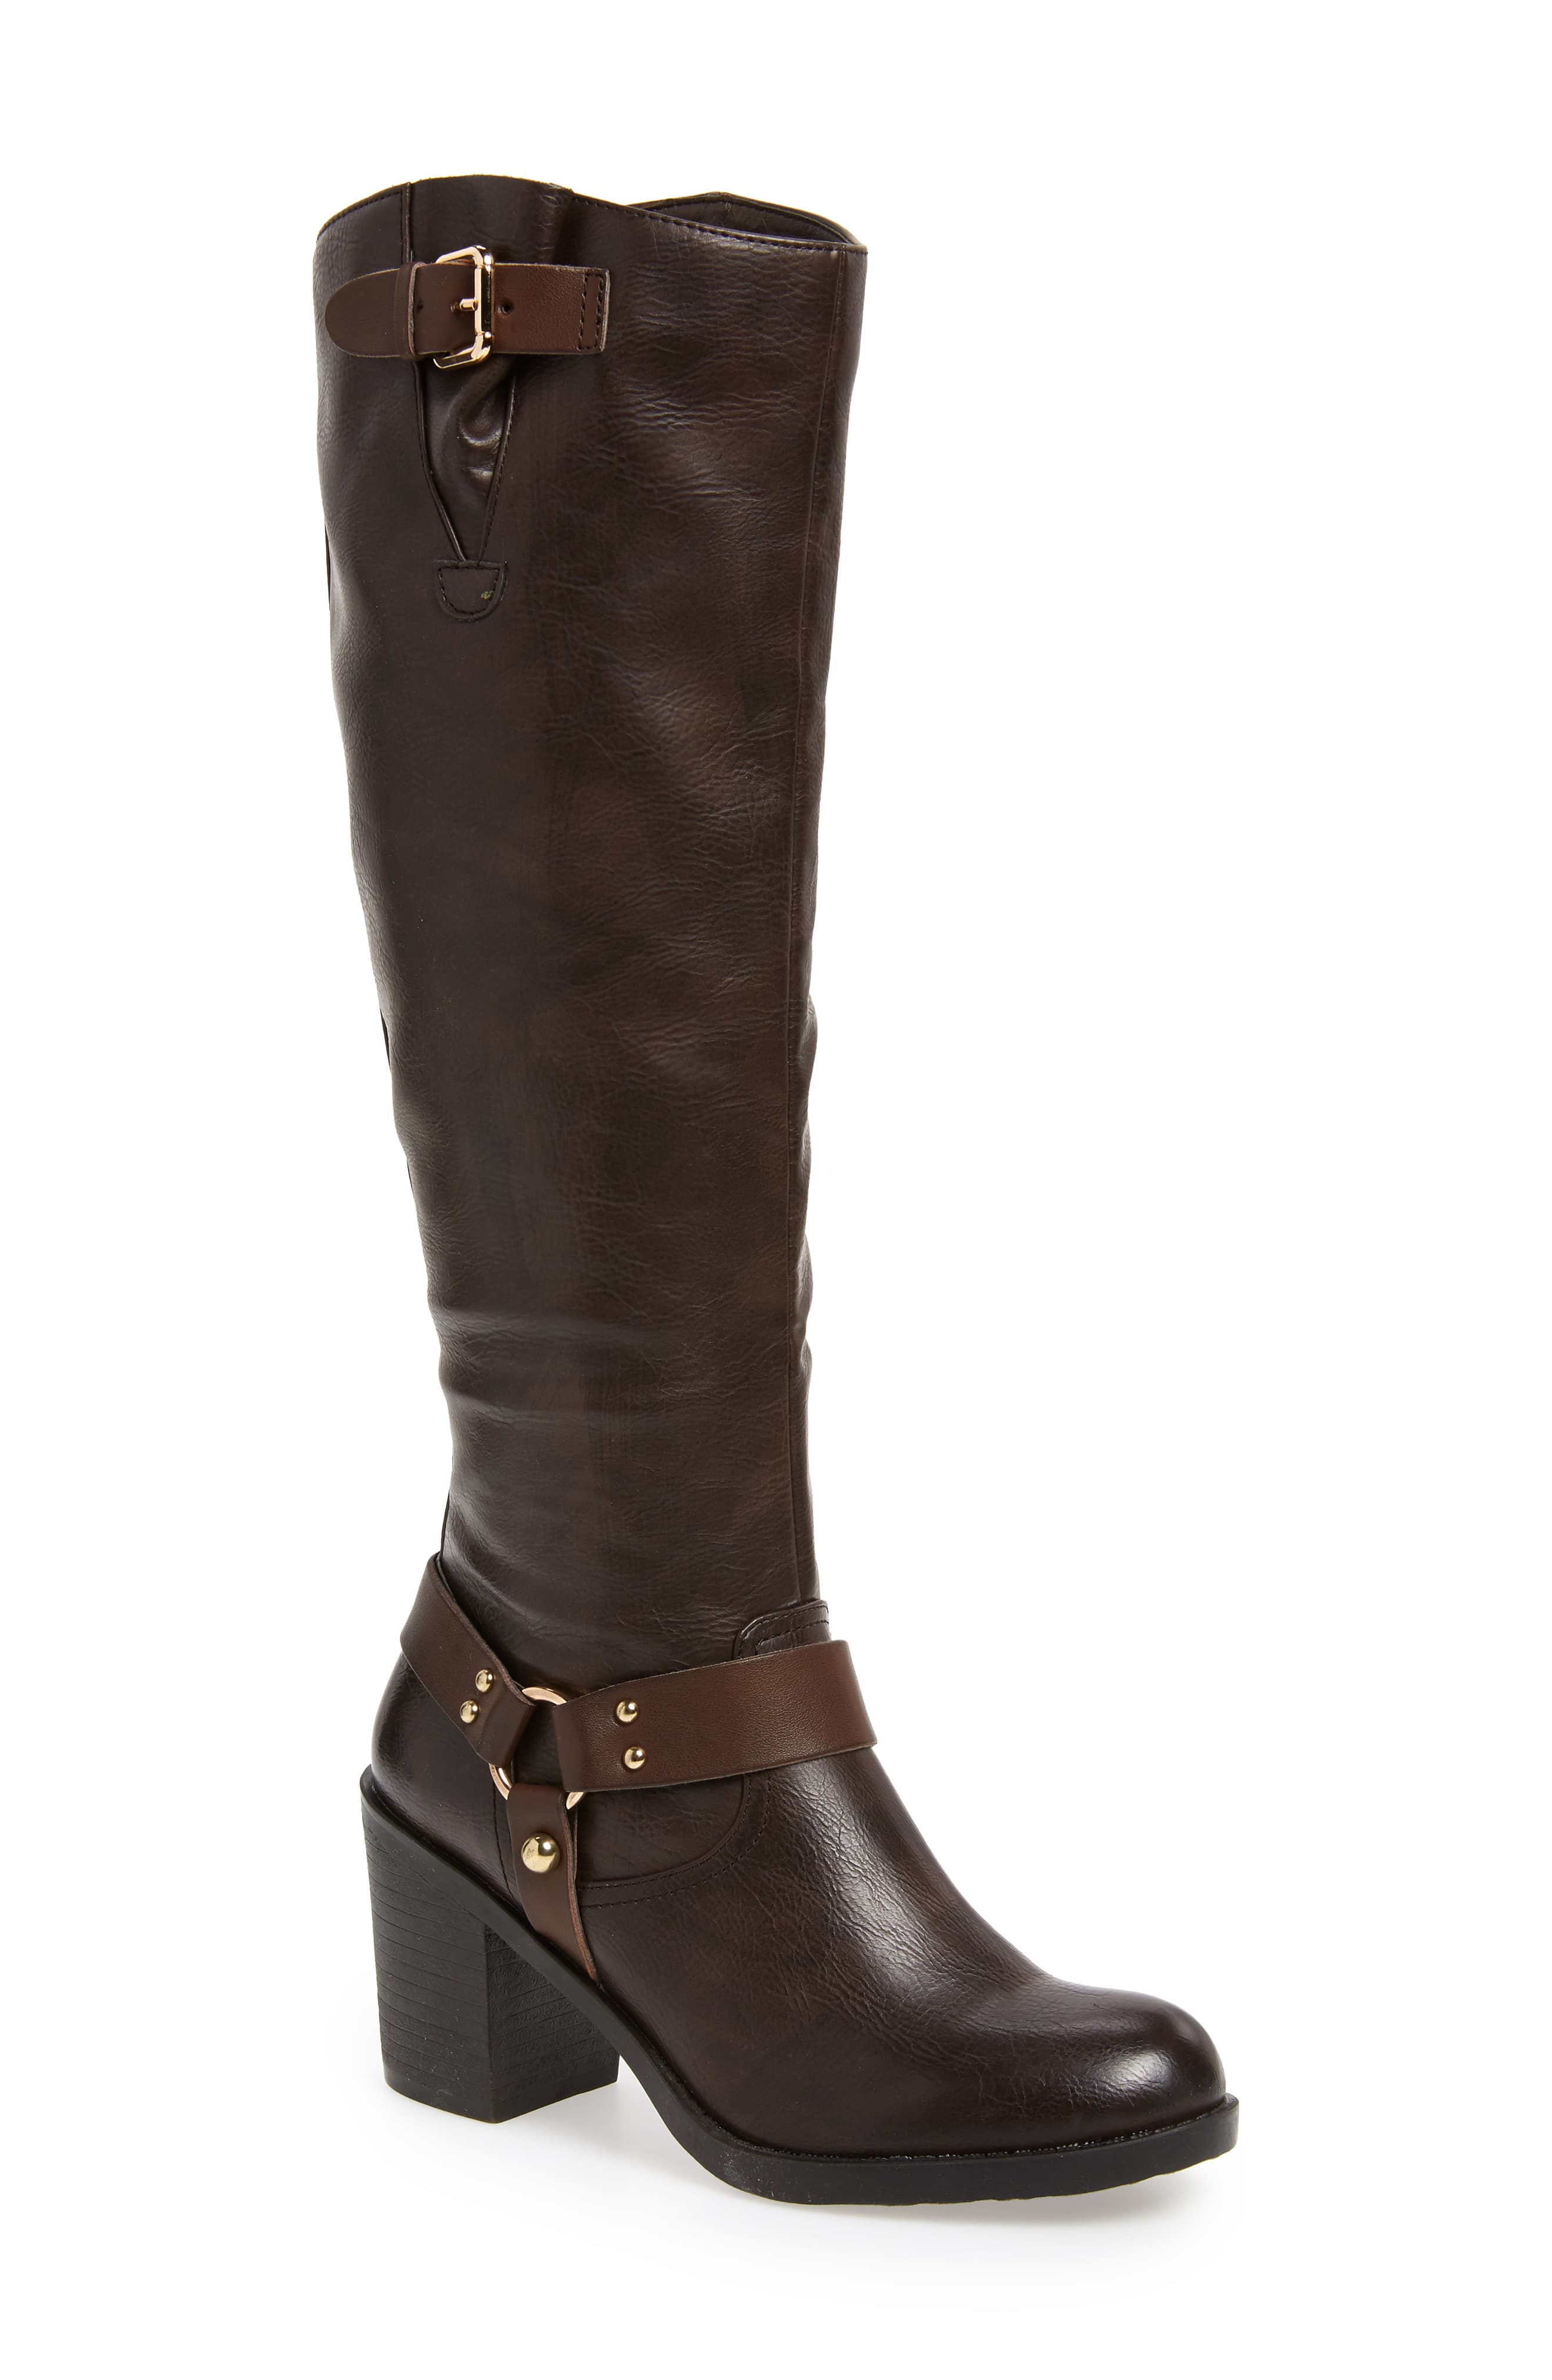 6d909871d Women's Sbicca Dimarco Knee High Boot, Size 6 M - Black in 2019 ...